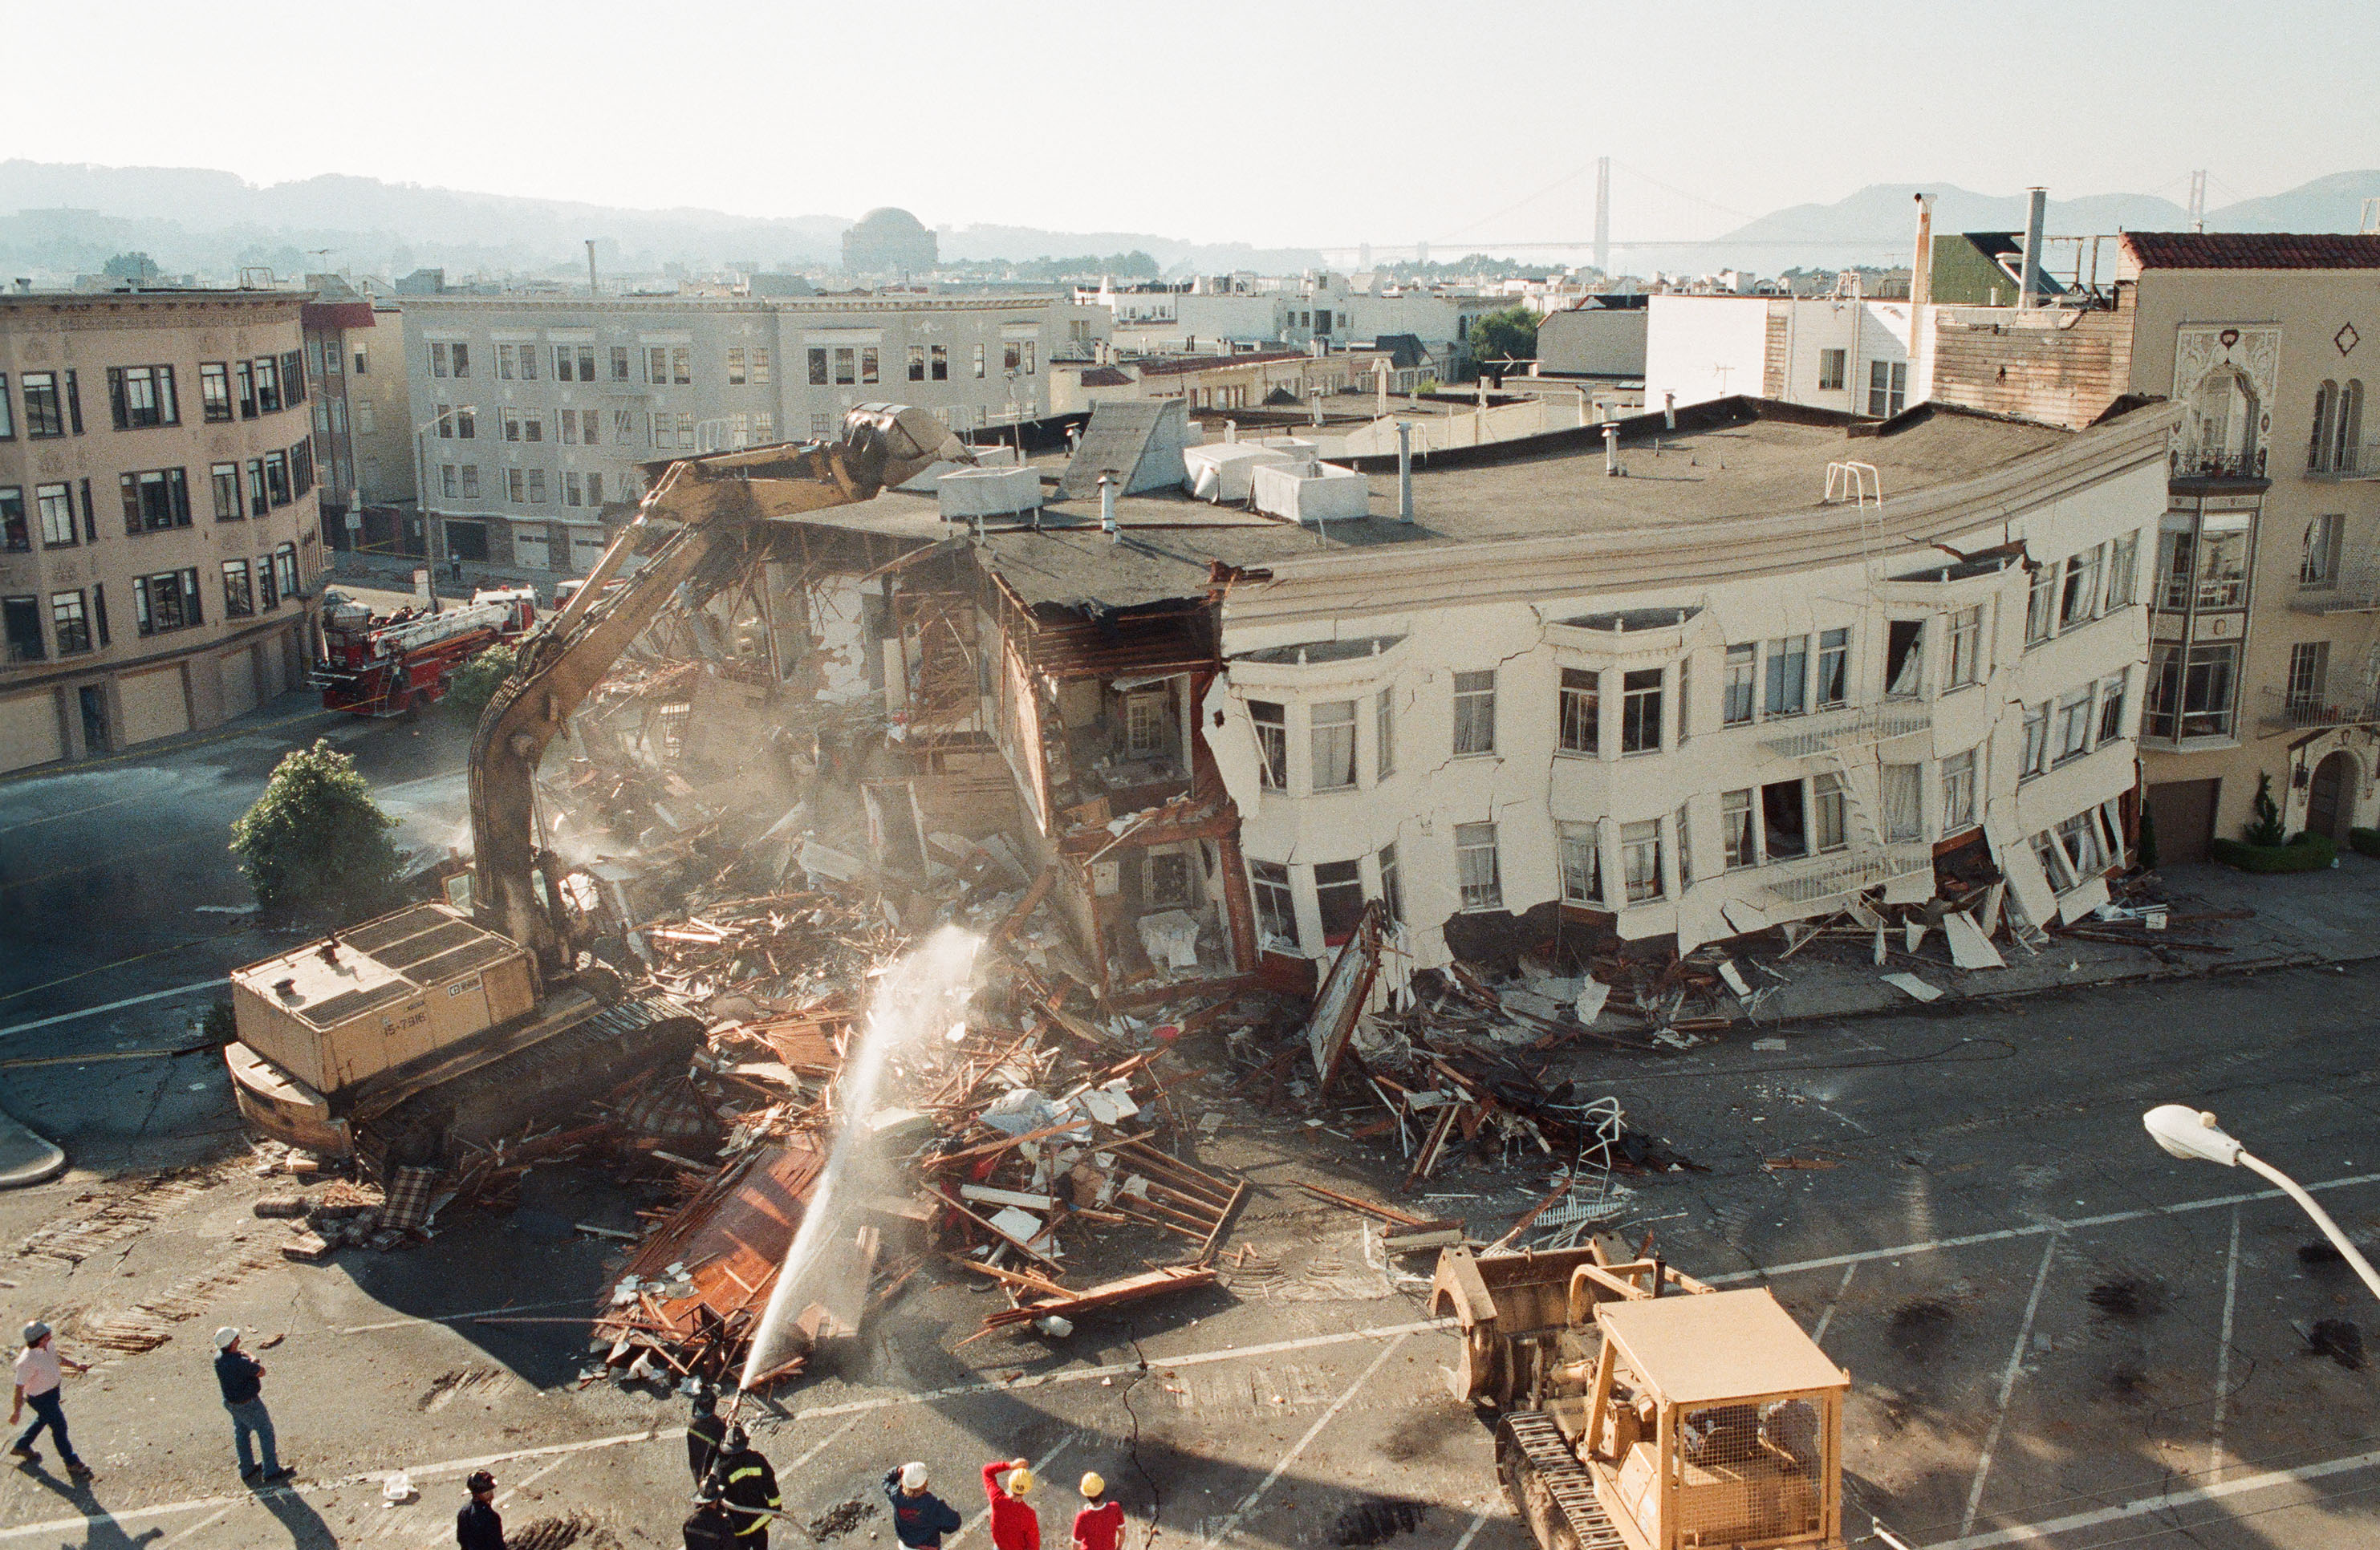 The Loma Prieta earthquake struck the Bay Area 30 years ago, and it looked like this